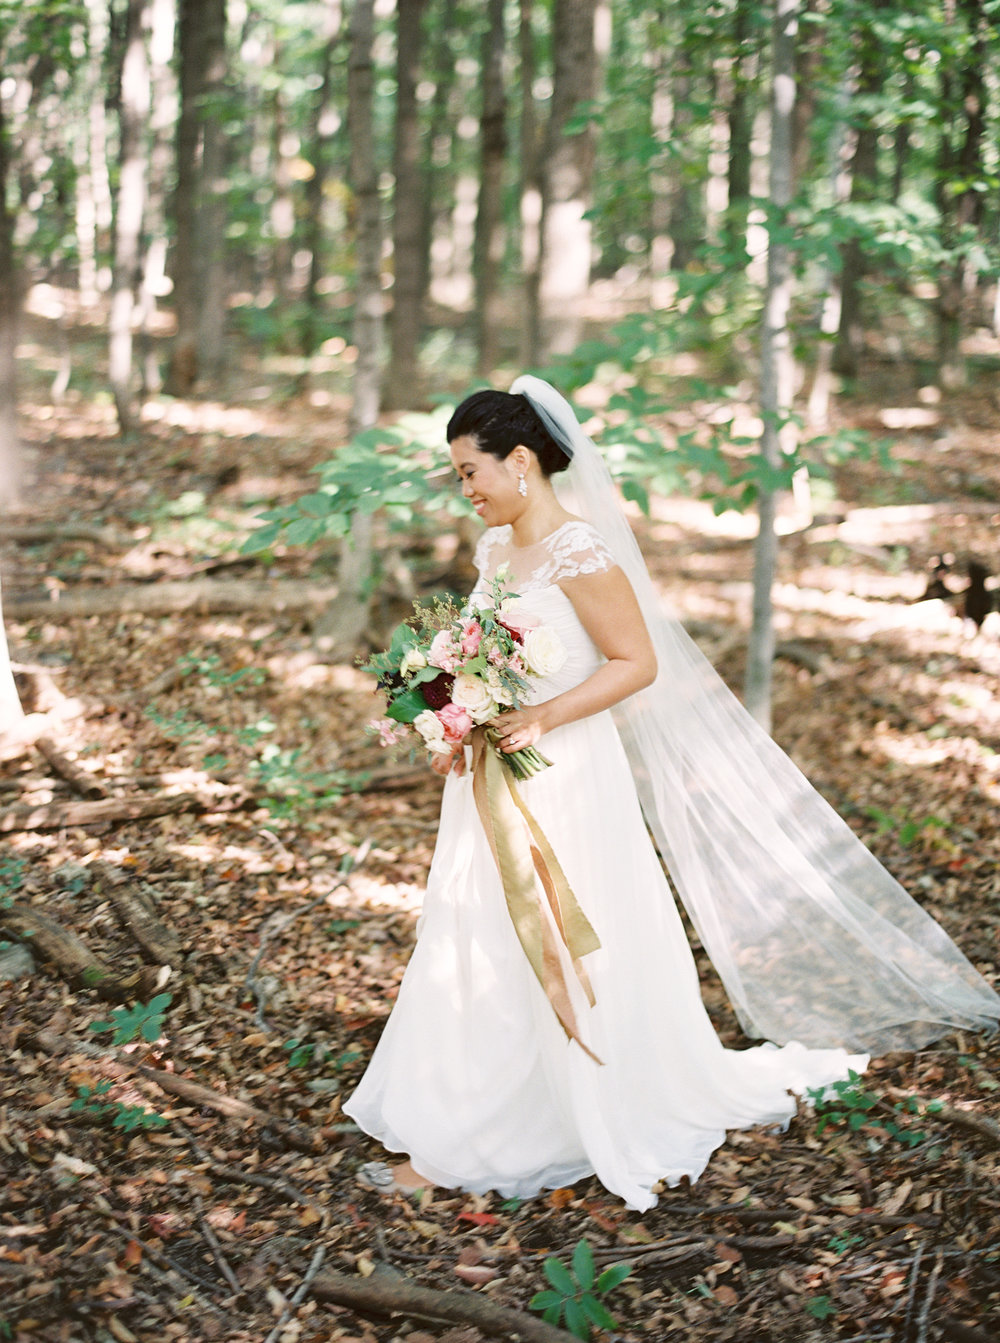 0047-WhenHeFoundHer-SugarShack-QuebecWedding-MagnoliaRouge.jpg